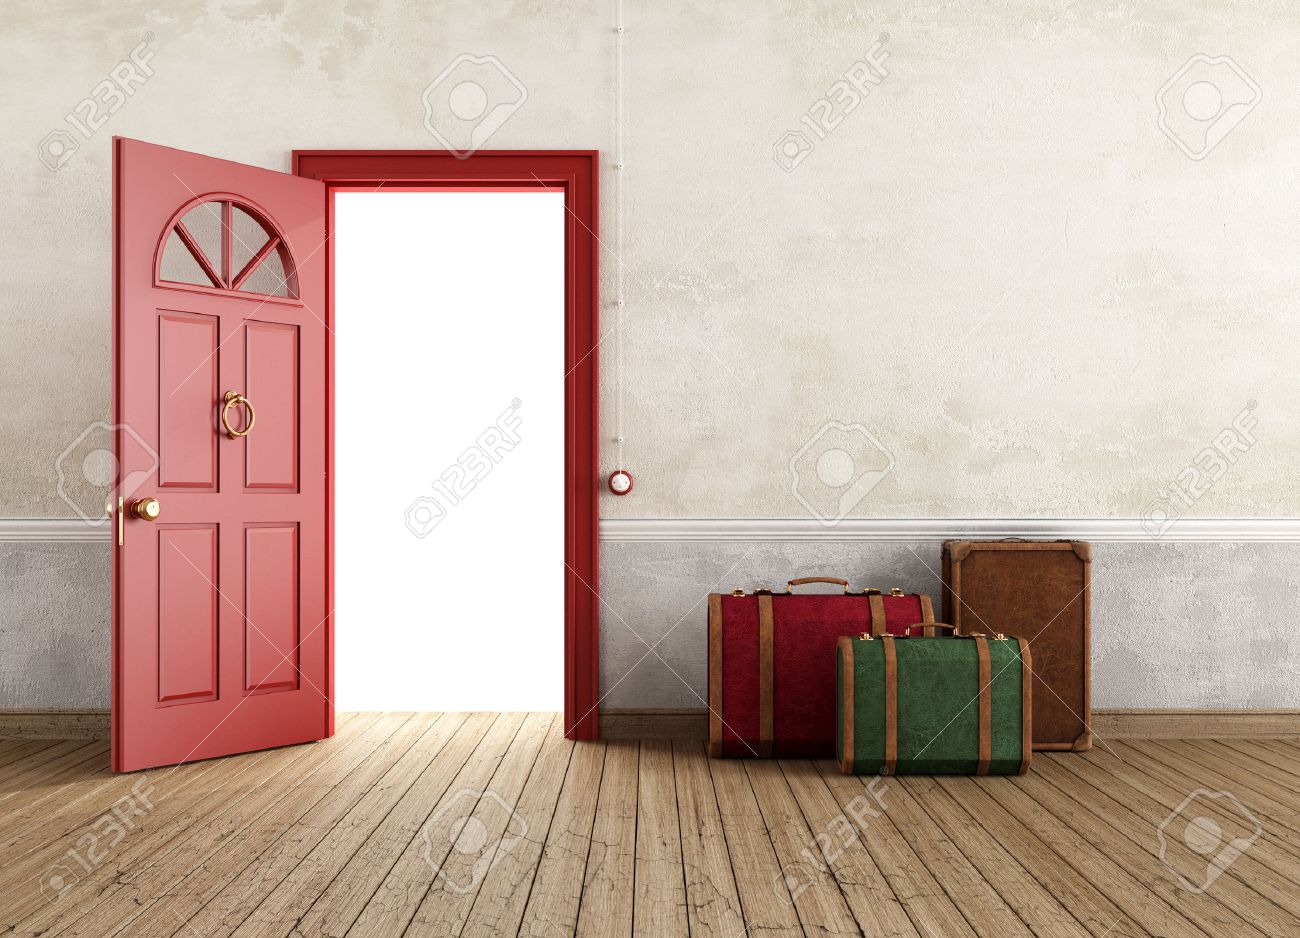 Stock Photo - Vintage empty interior with three travel bags near the front door open - rendering & Vintage Empty Interior With Three Travel Bags Near The Front.. Stock ...